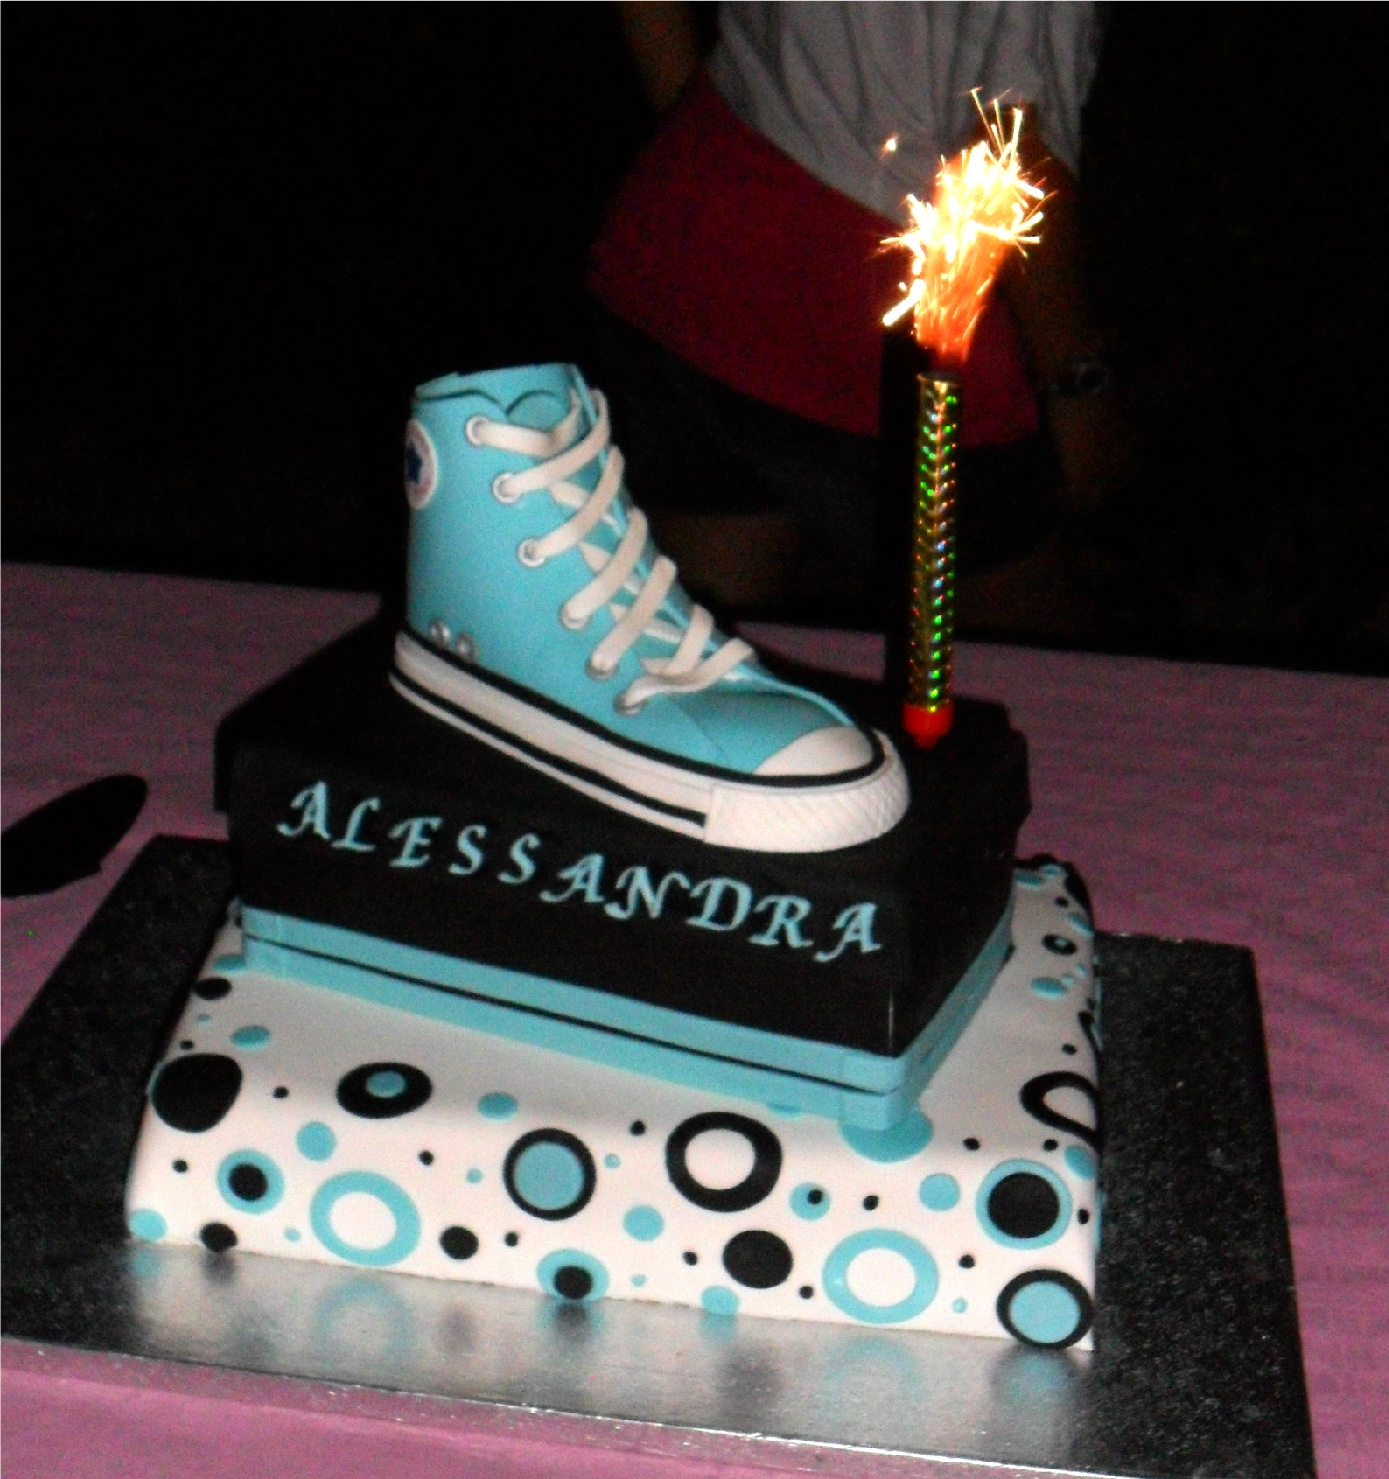 Outstanding All Star Converse Cake Cakecentral Com Funny Birthday Cards Online Bapapcheapnameinfo